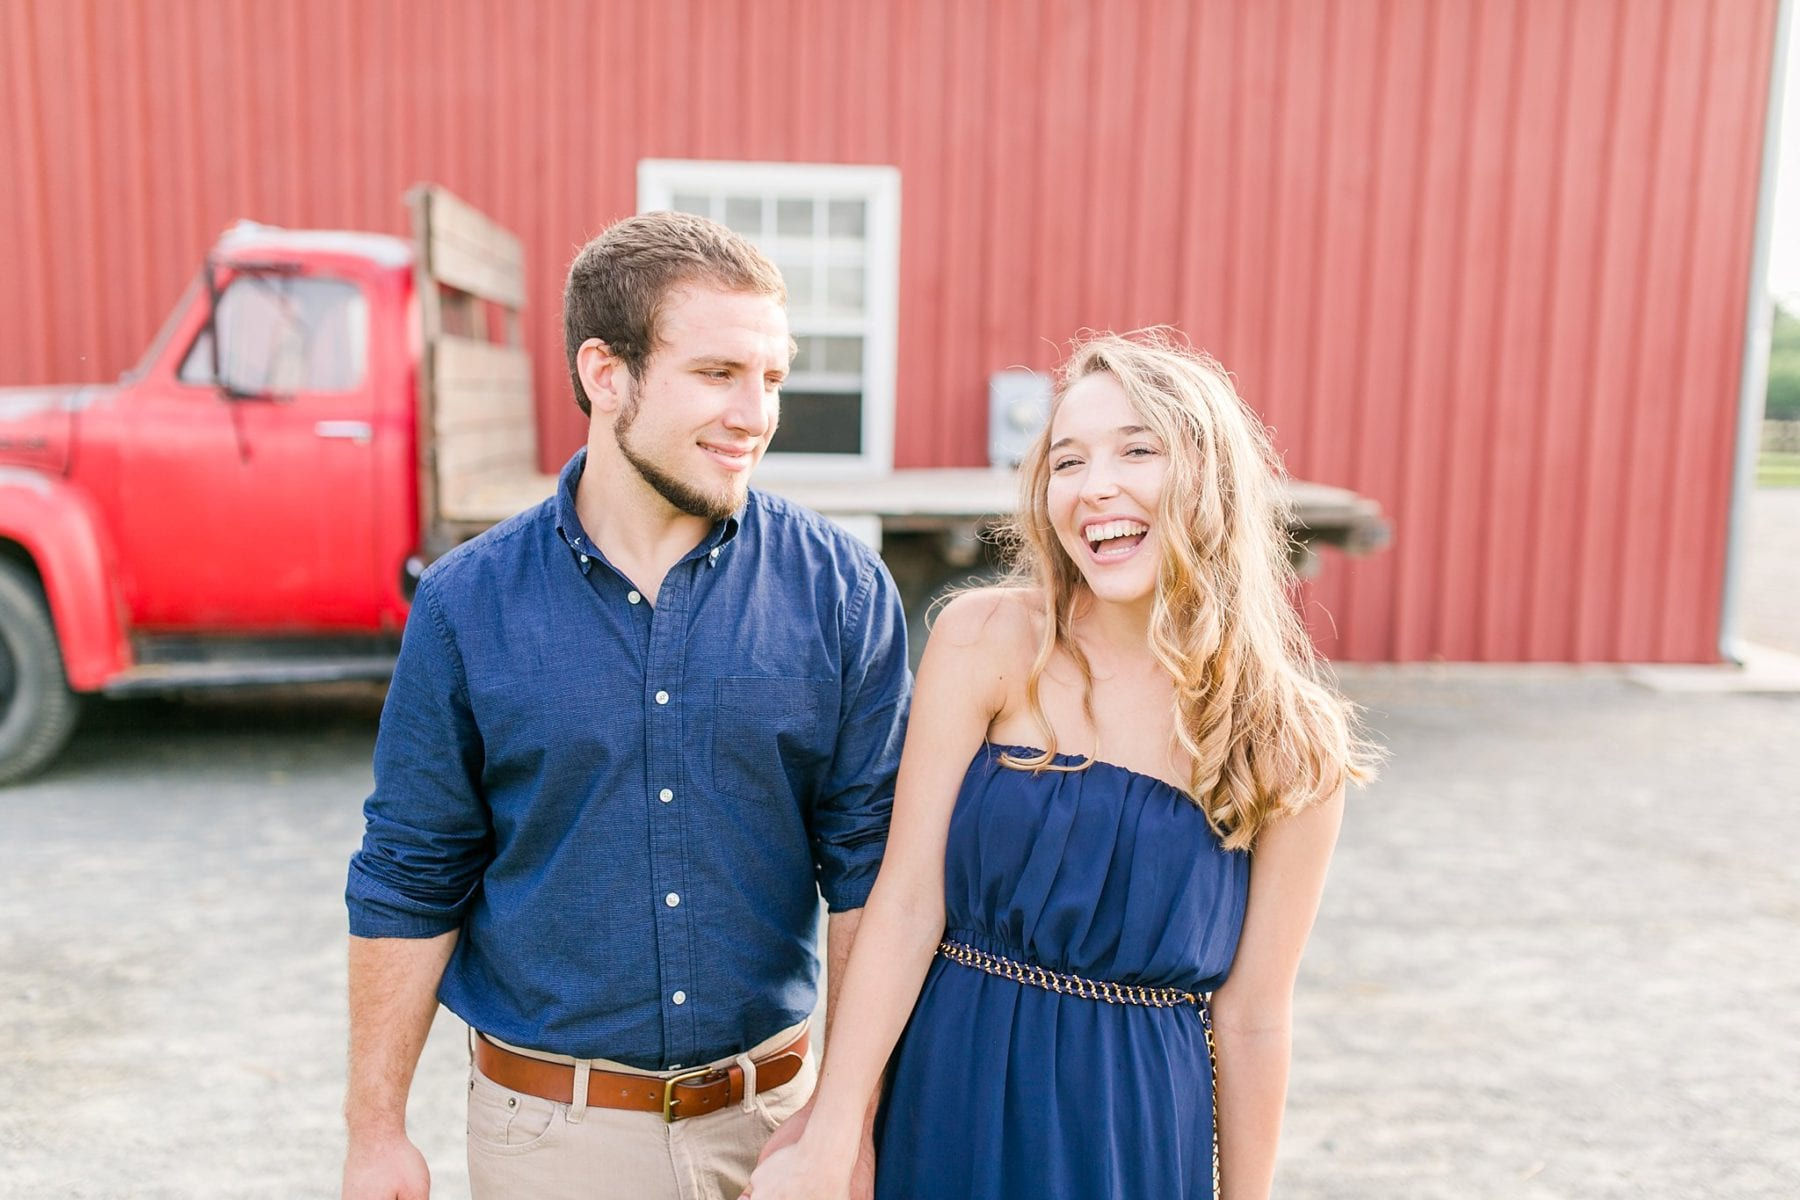 County Fair Engagement Photos Virginia Wedding Photographer Megan Kelsey Photography Samantha & Charles-251.JPG